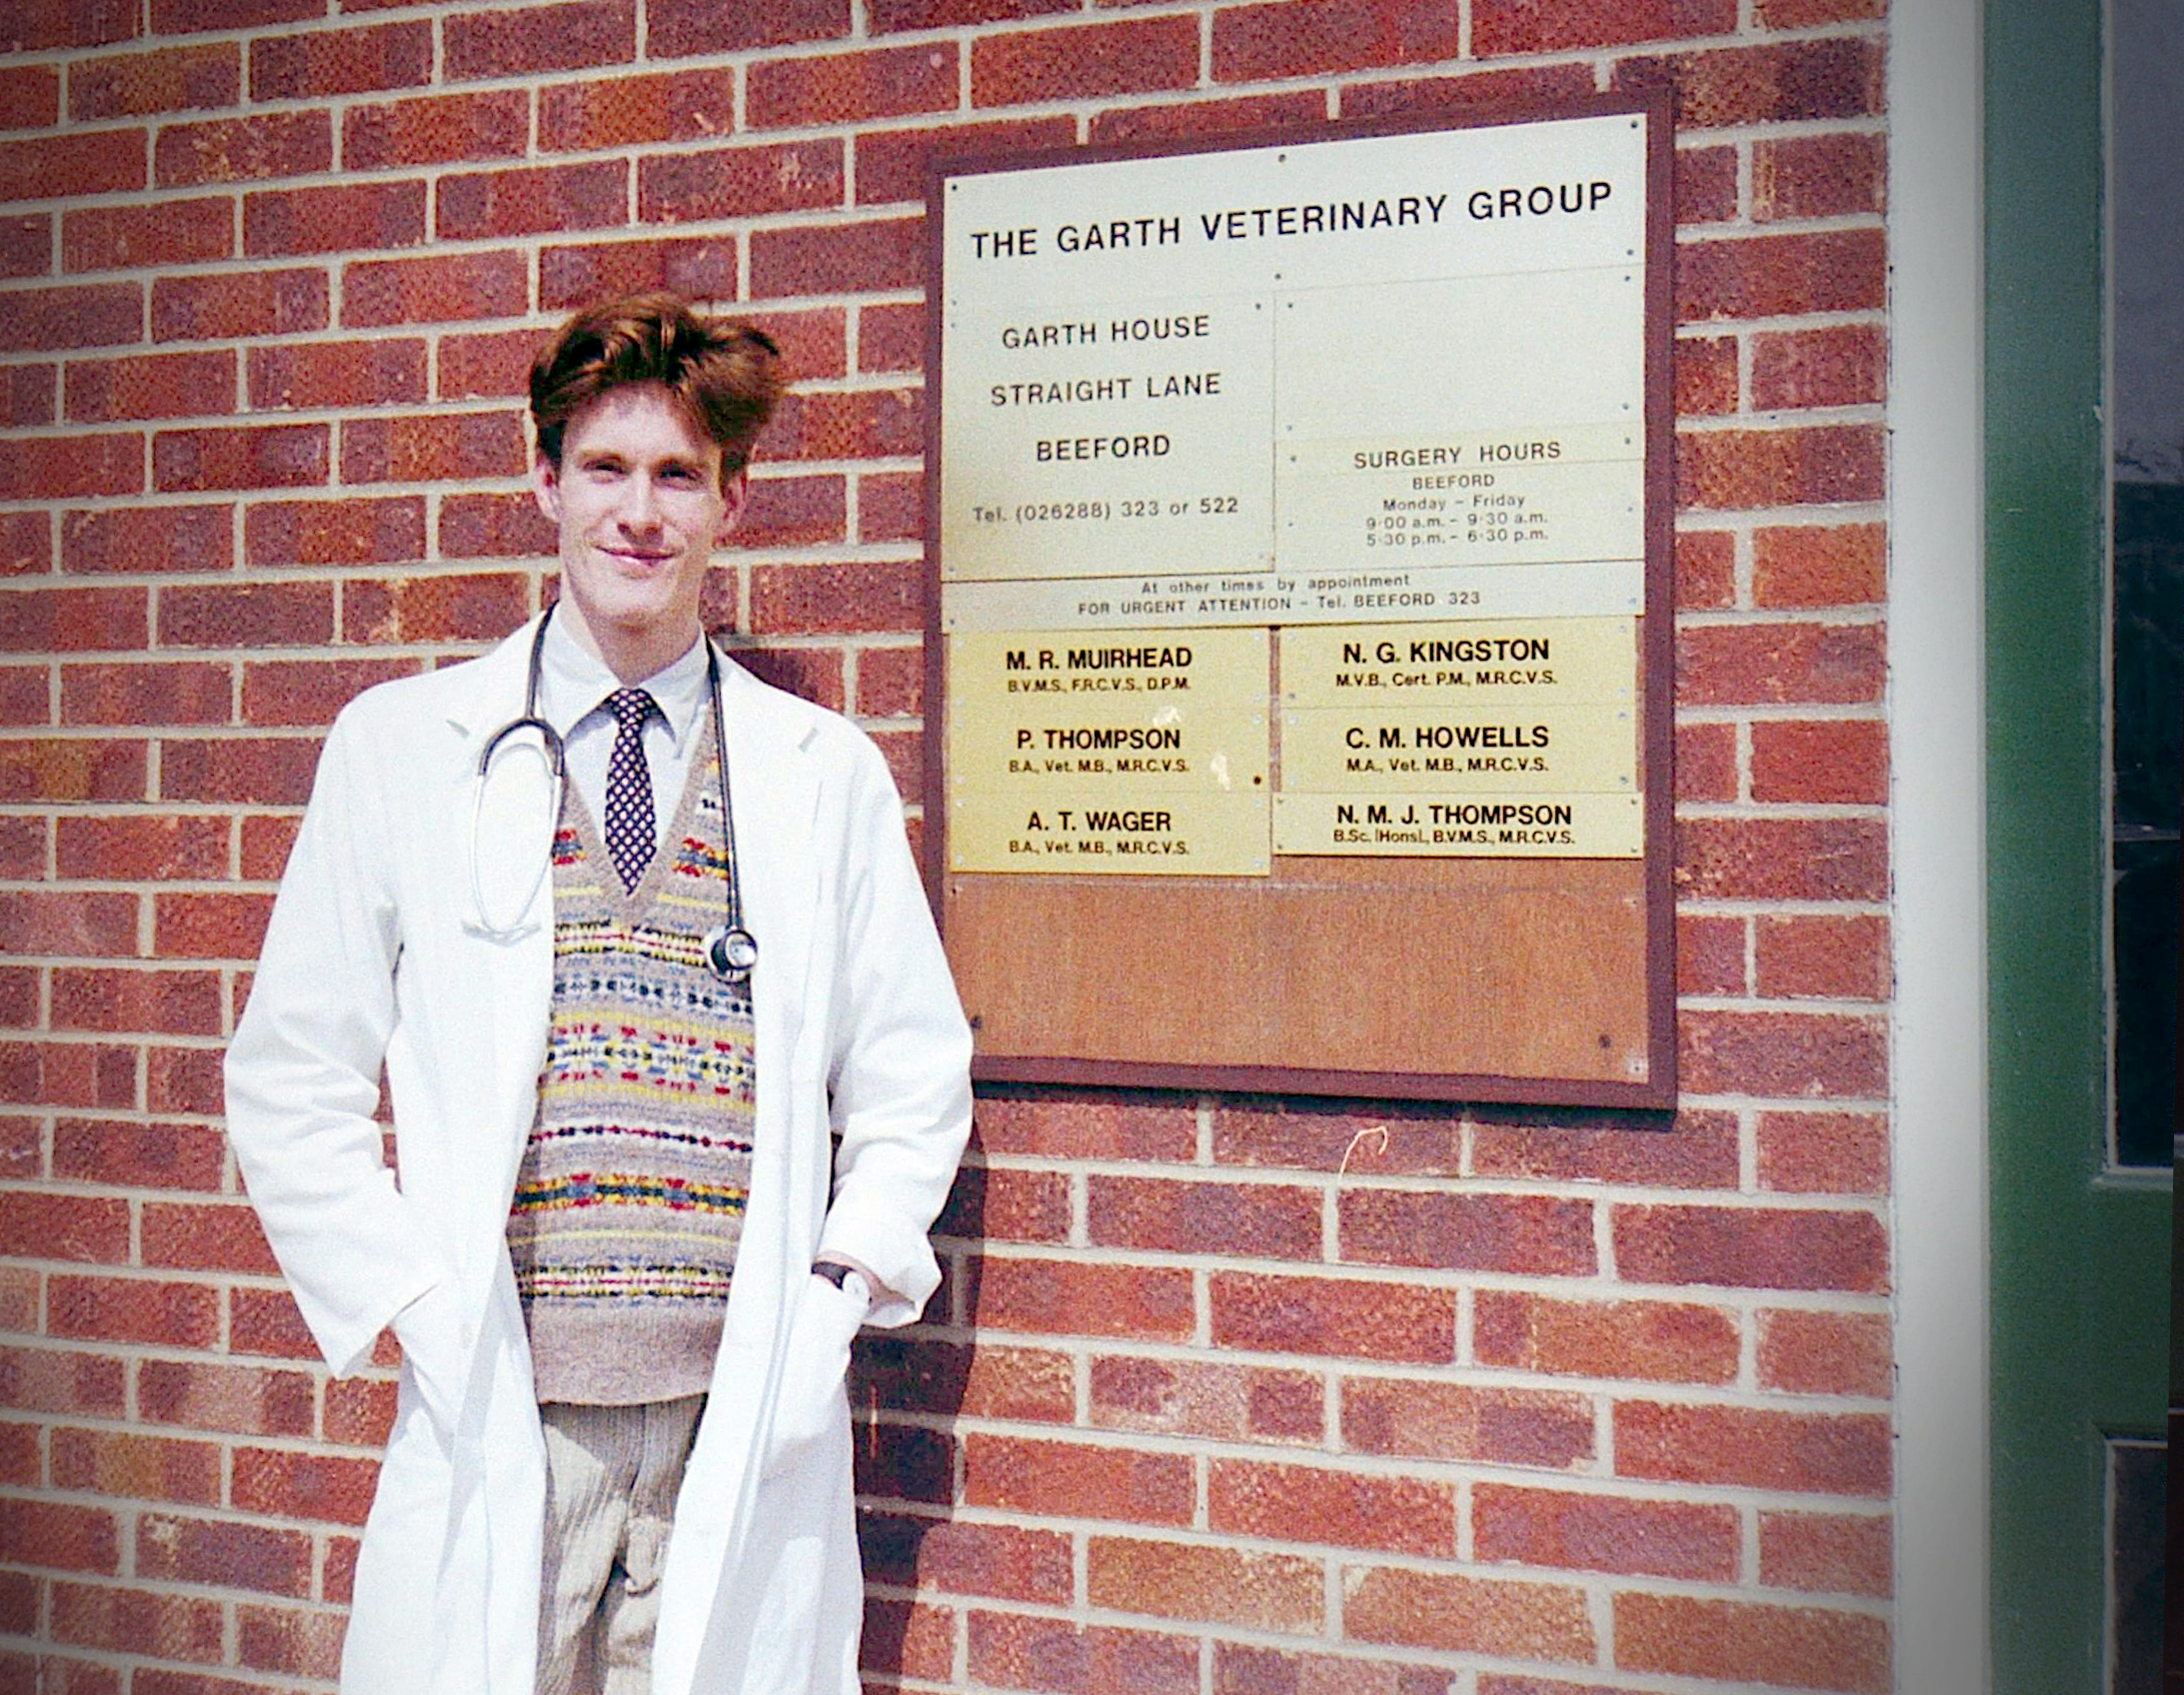 Nick Thompson standing outside the Garth Veterinary Group practice in 1996